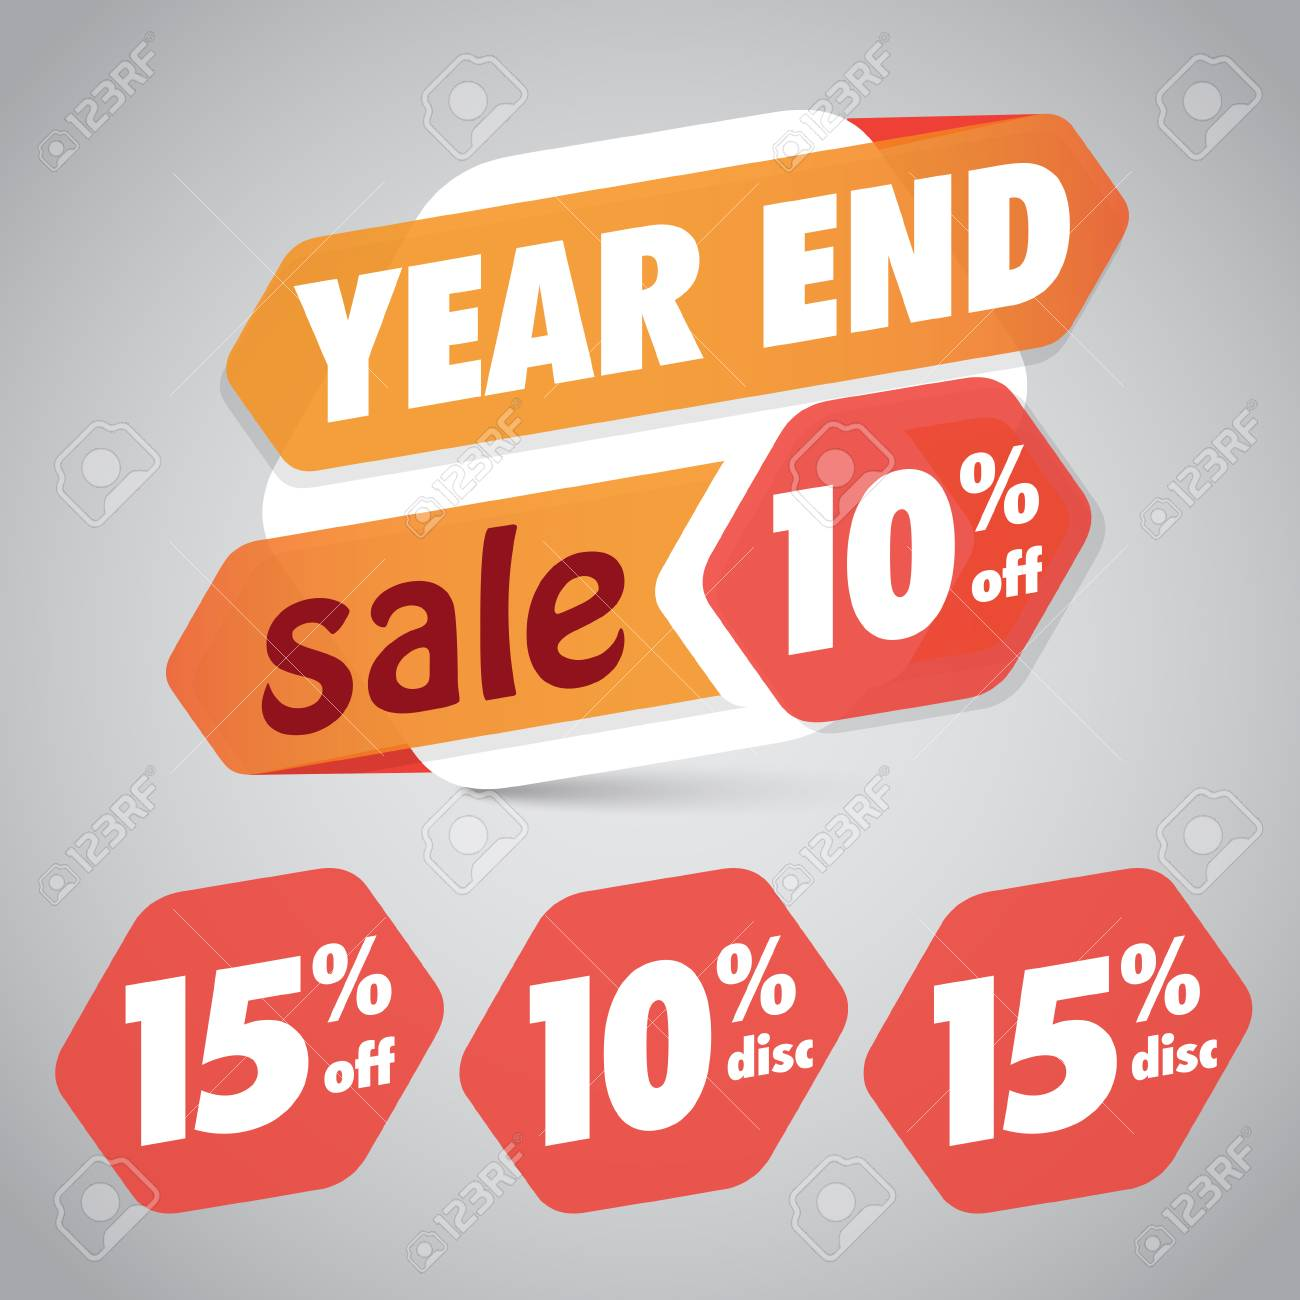 Don't miss year-end sale to save a lot of money